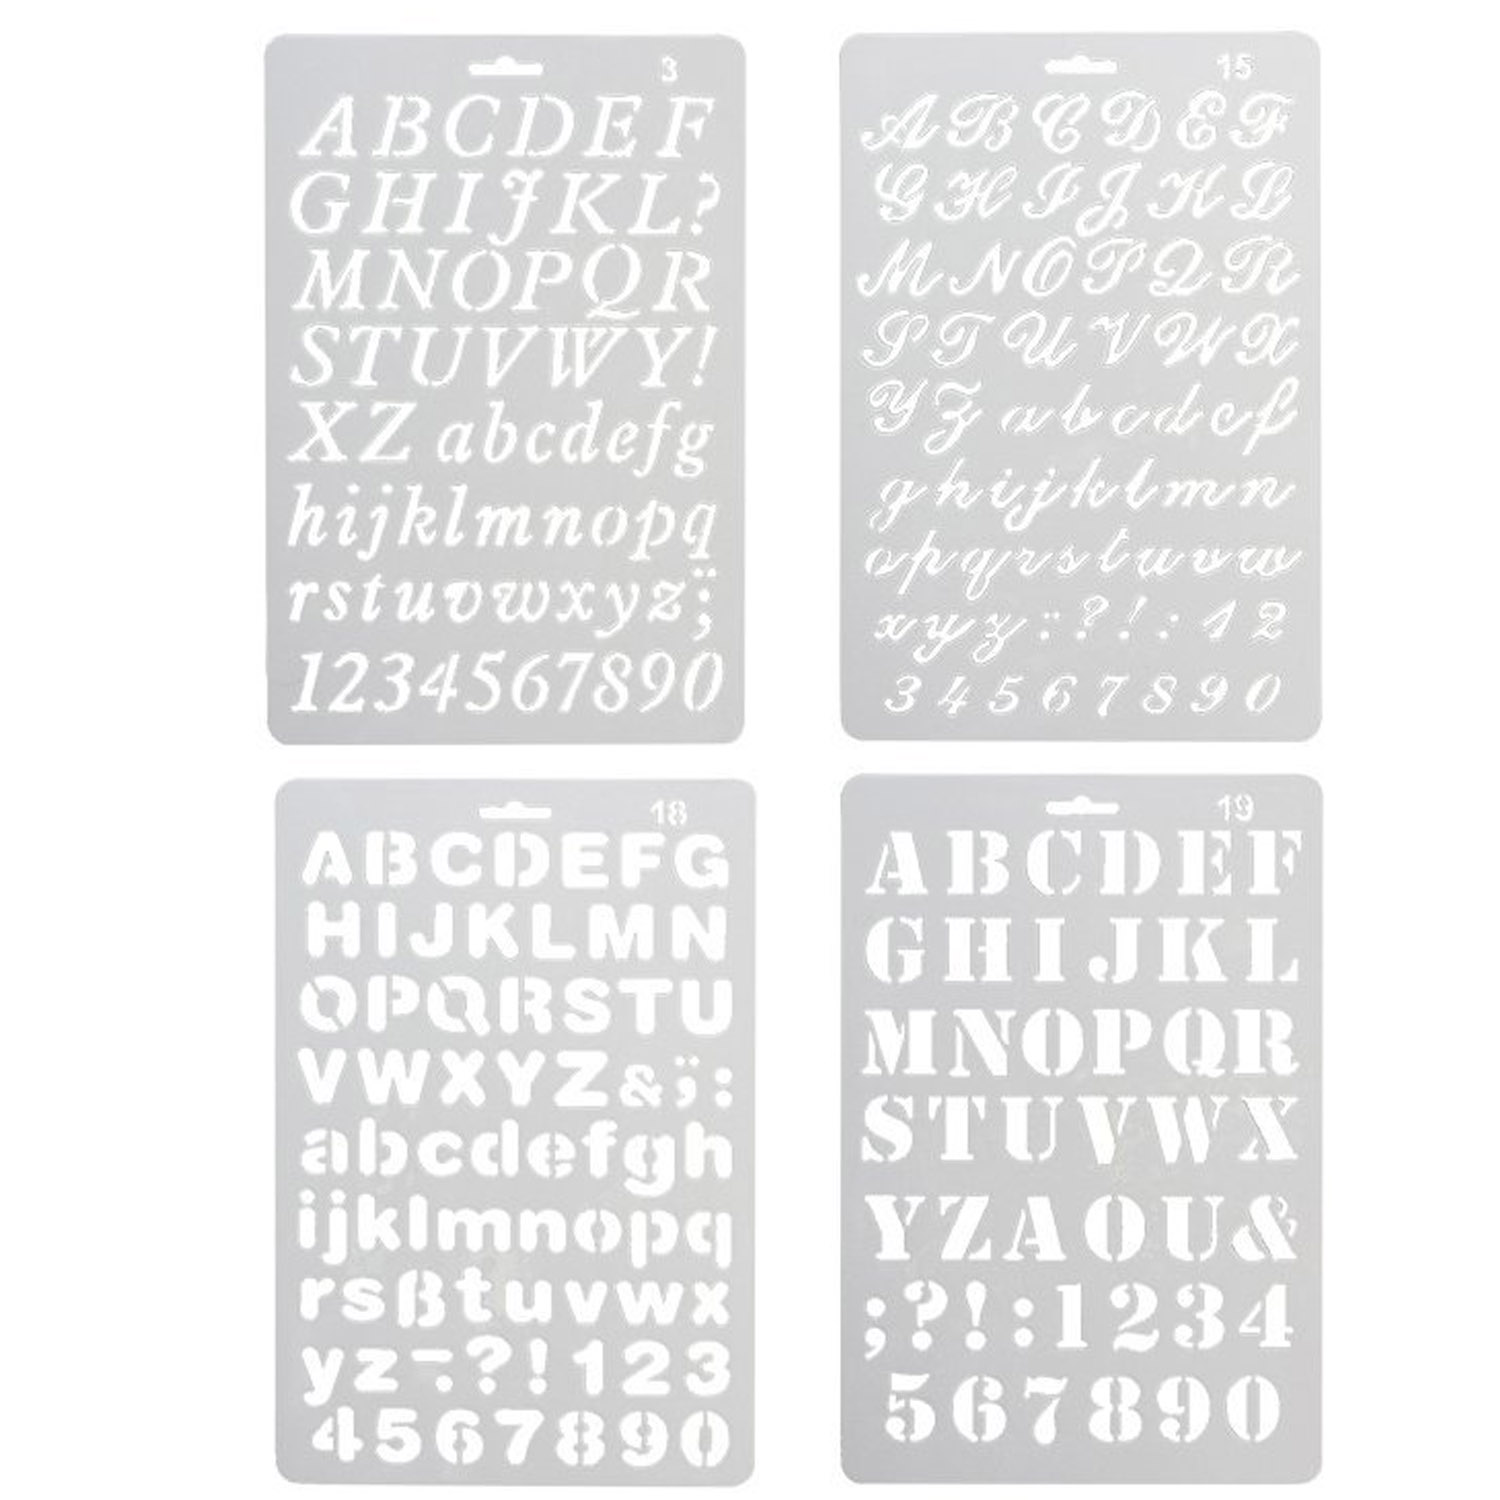 4 PCS Assorted Styles Number And Letter Drawing Templates Stencil Set For DIY Craft Journal Photo Album Scrapbook Art Projects